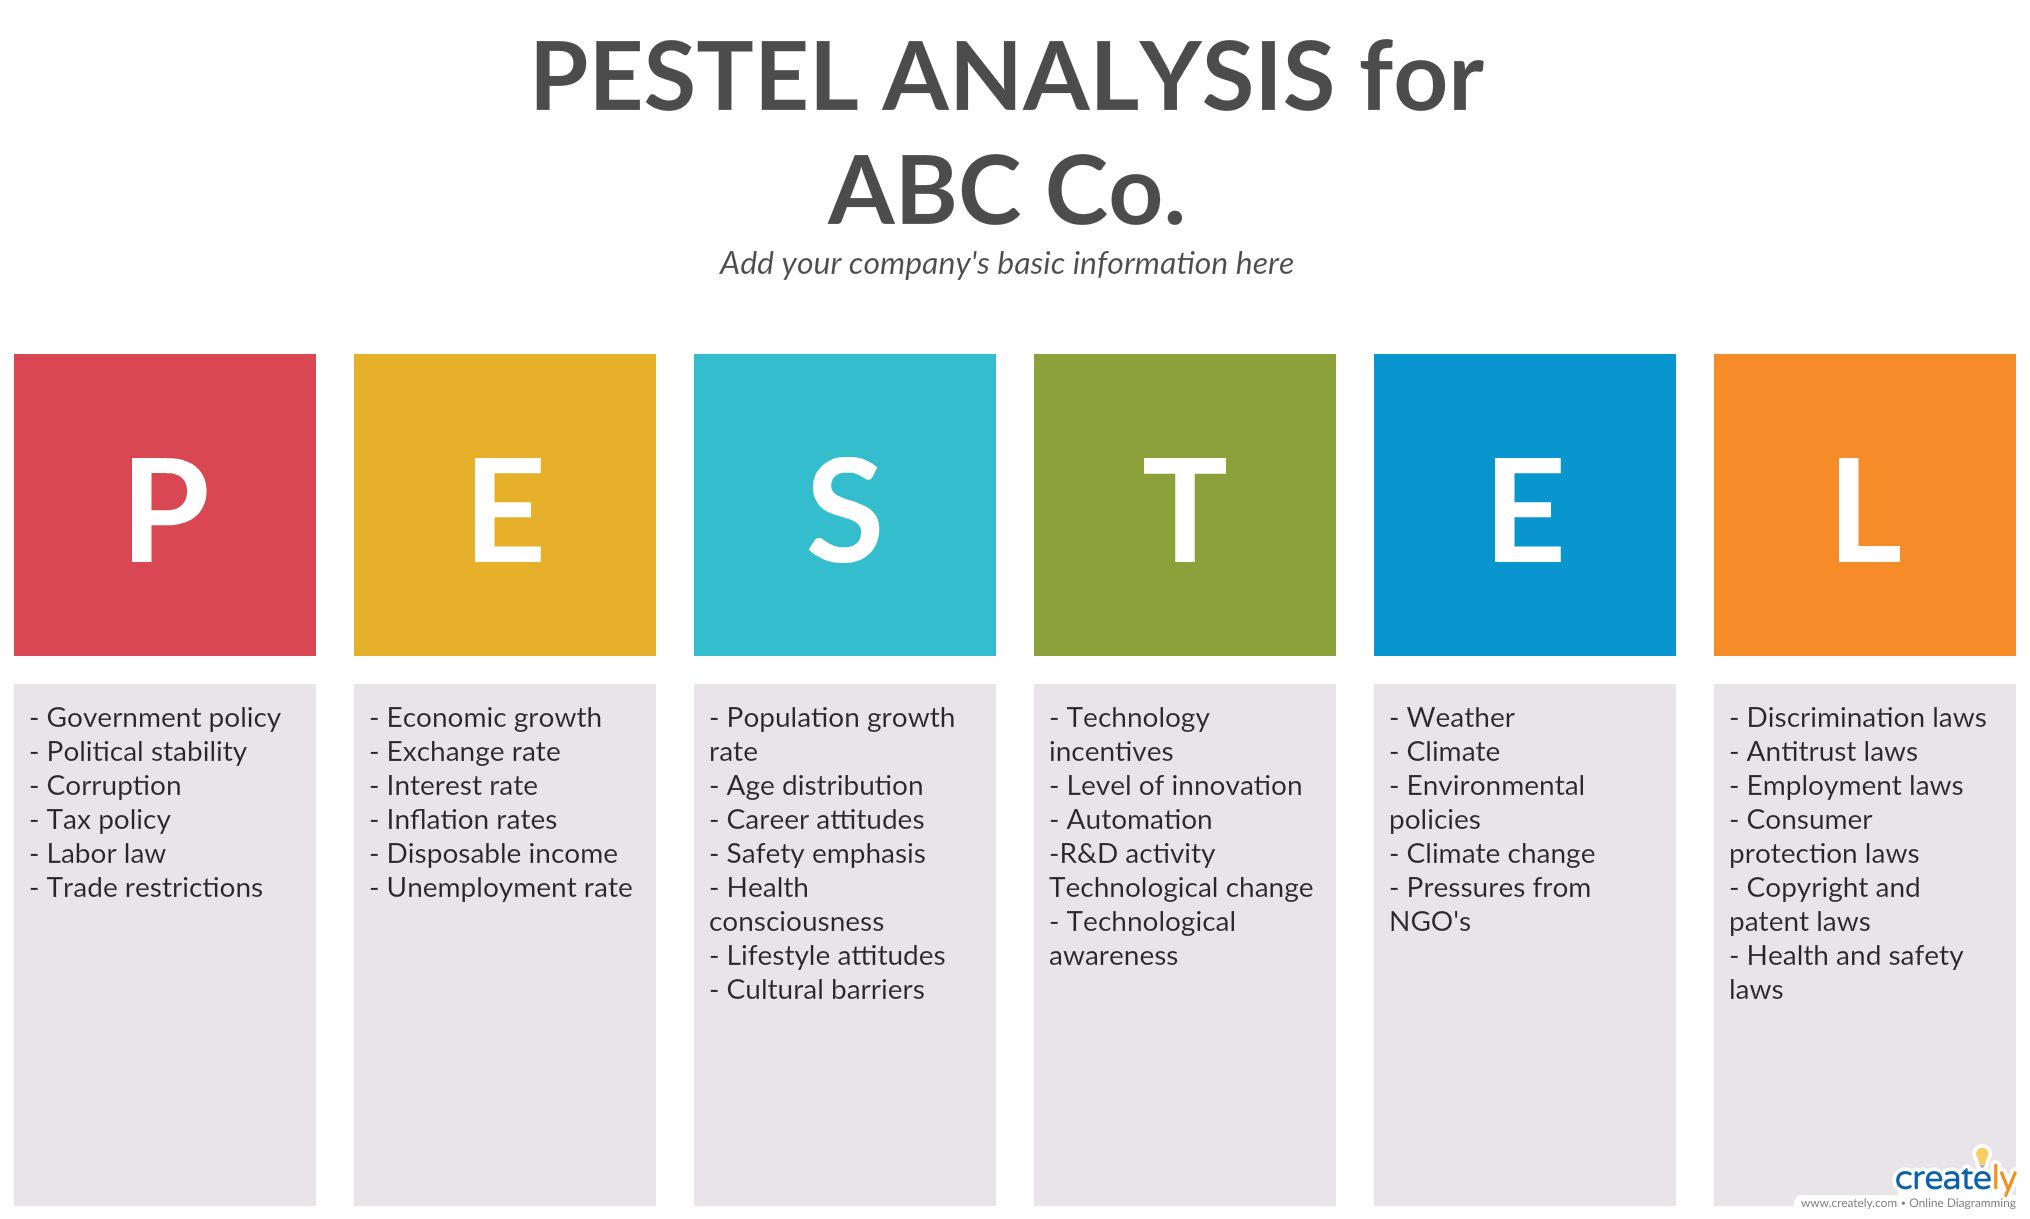 PESTLE Analysis for Business Analysis - PEST analysis is ...